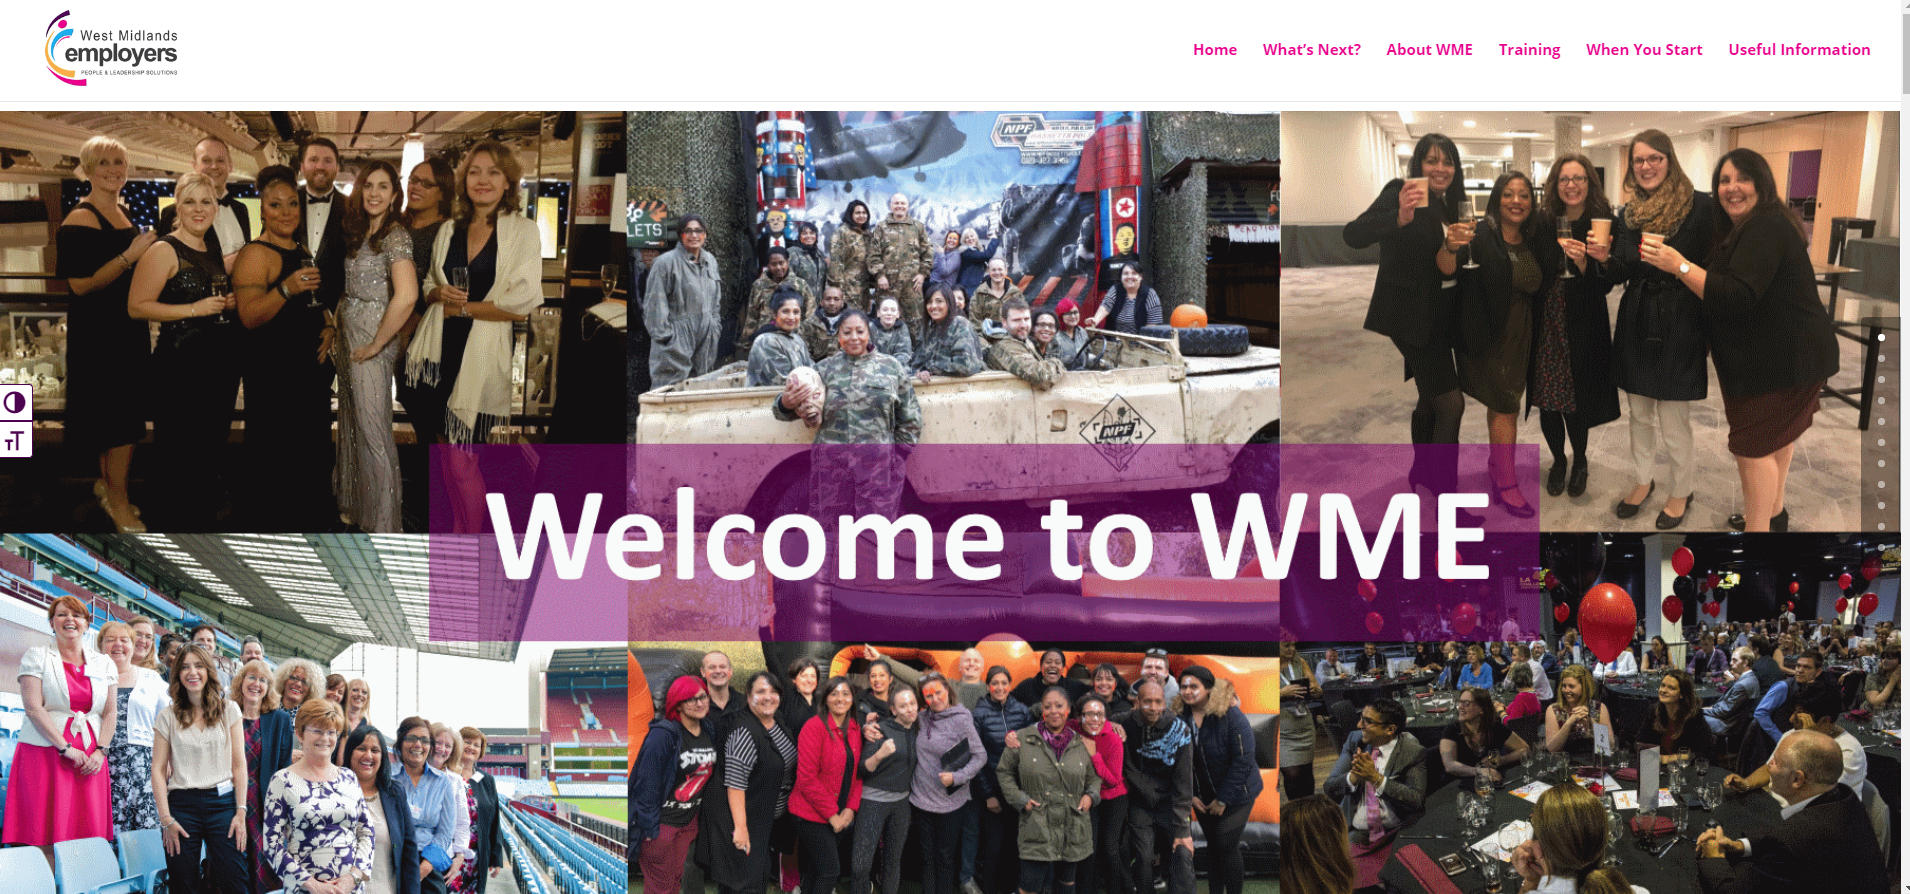 WME Onboarding